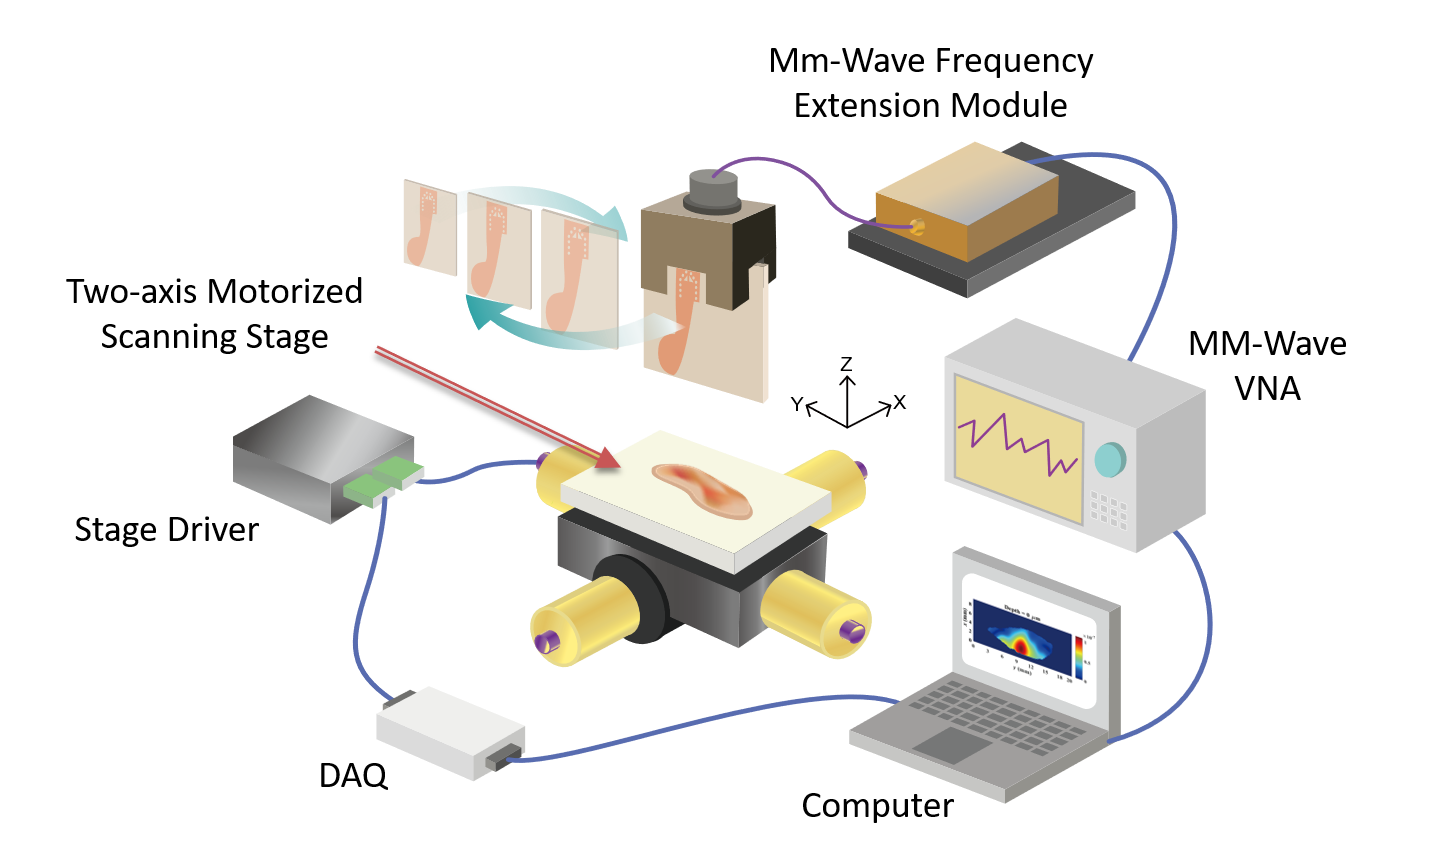 Schematic diagram of the imaging system.